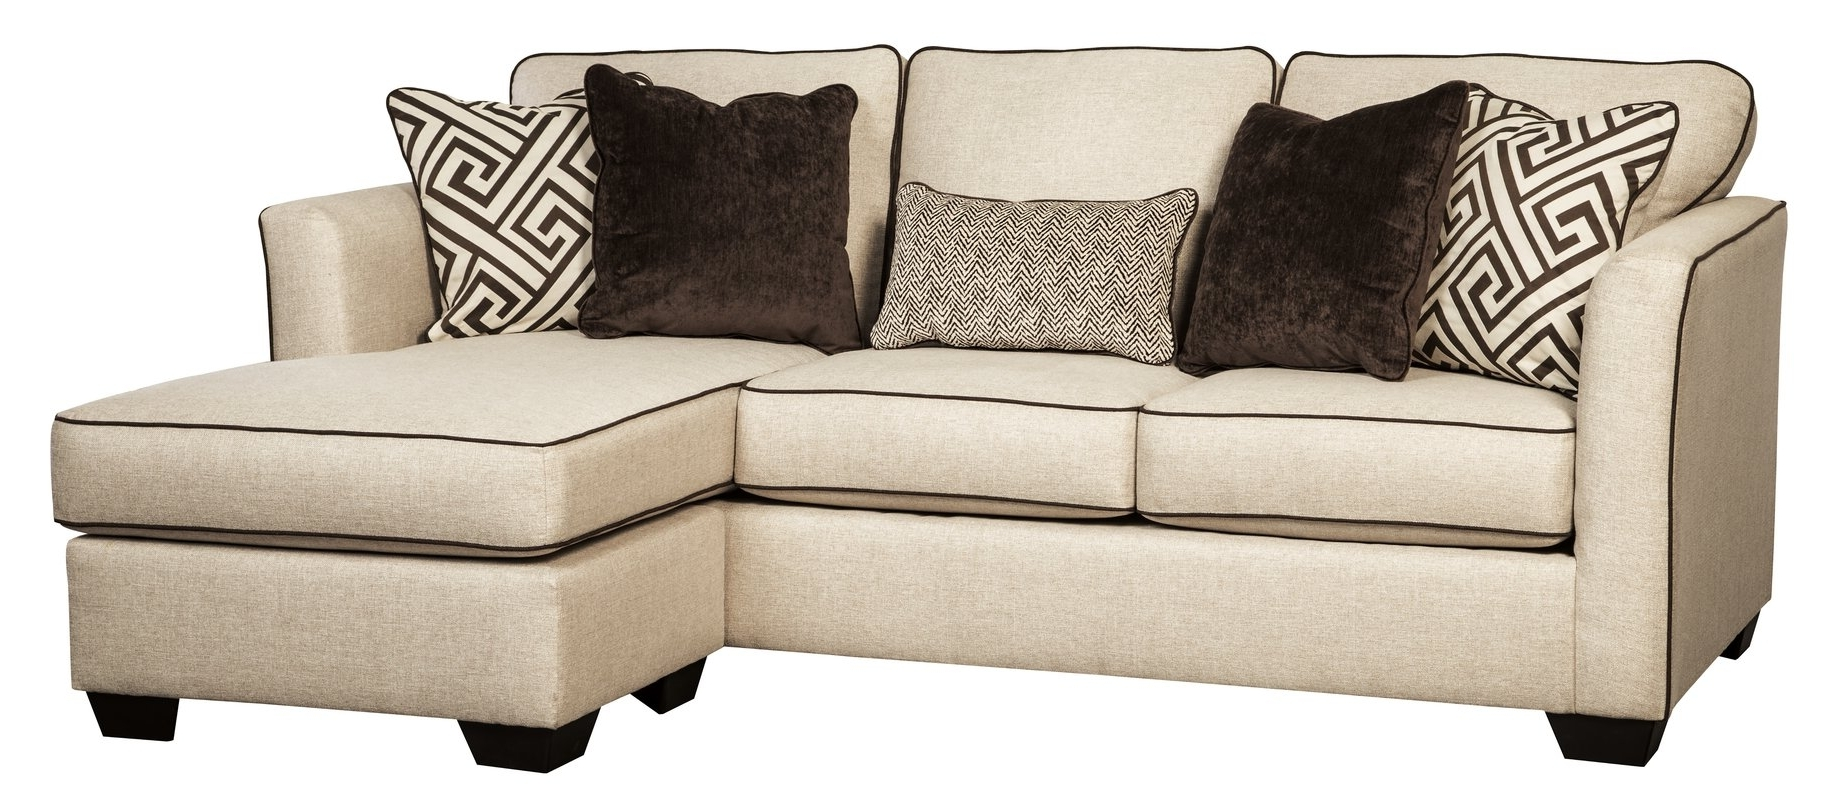 Wayfair For Chaise Sofas (View 14 of 15)